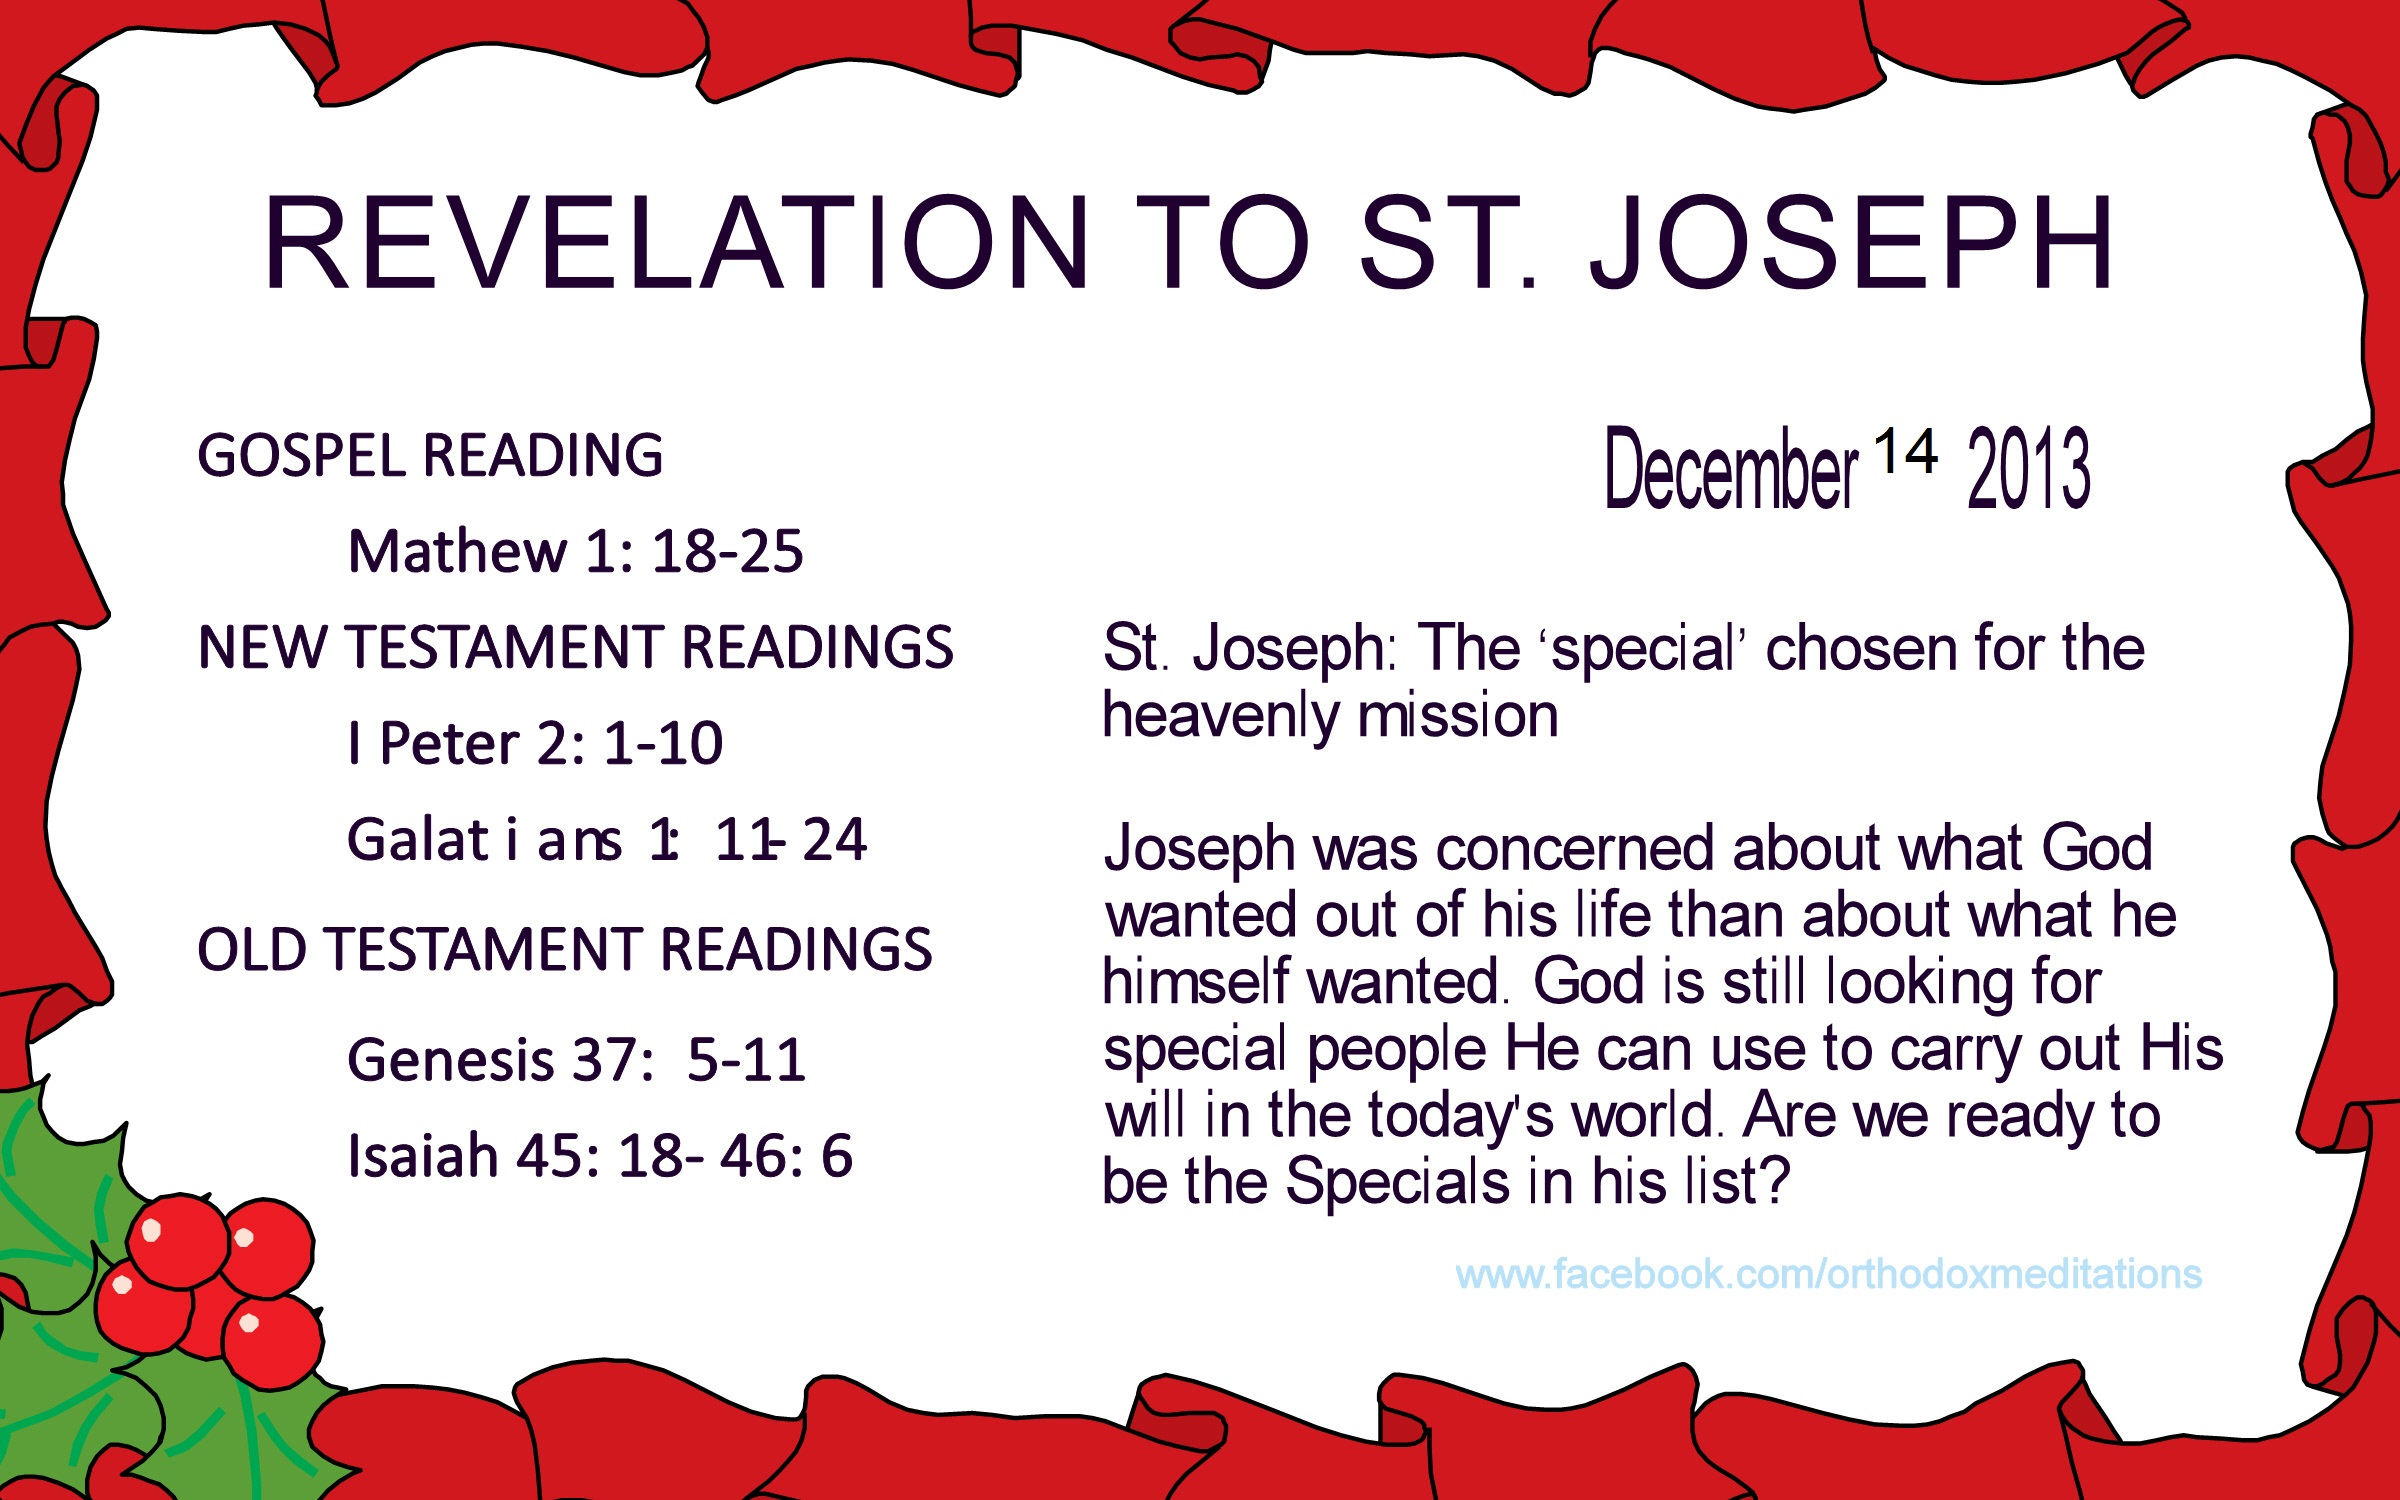 Revelation-to-St.-Joseph_001_001_001